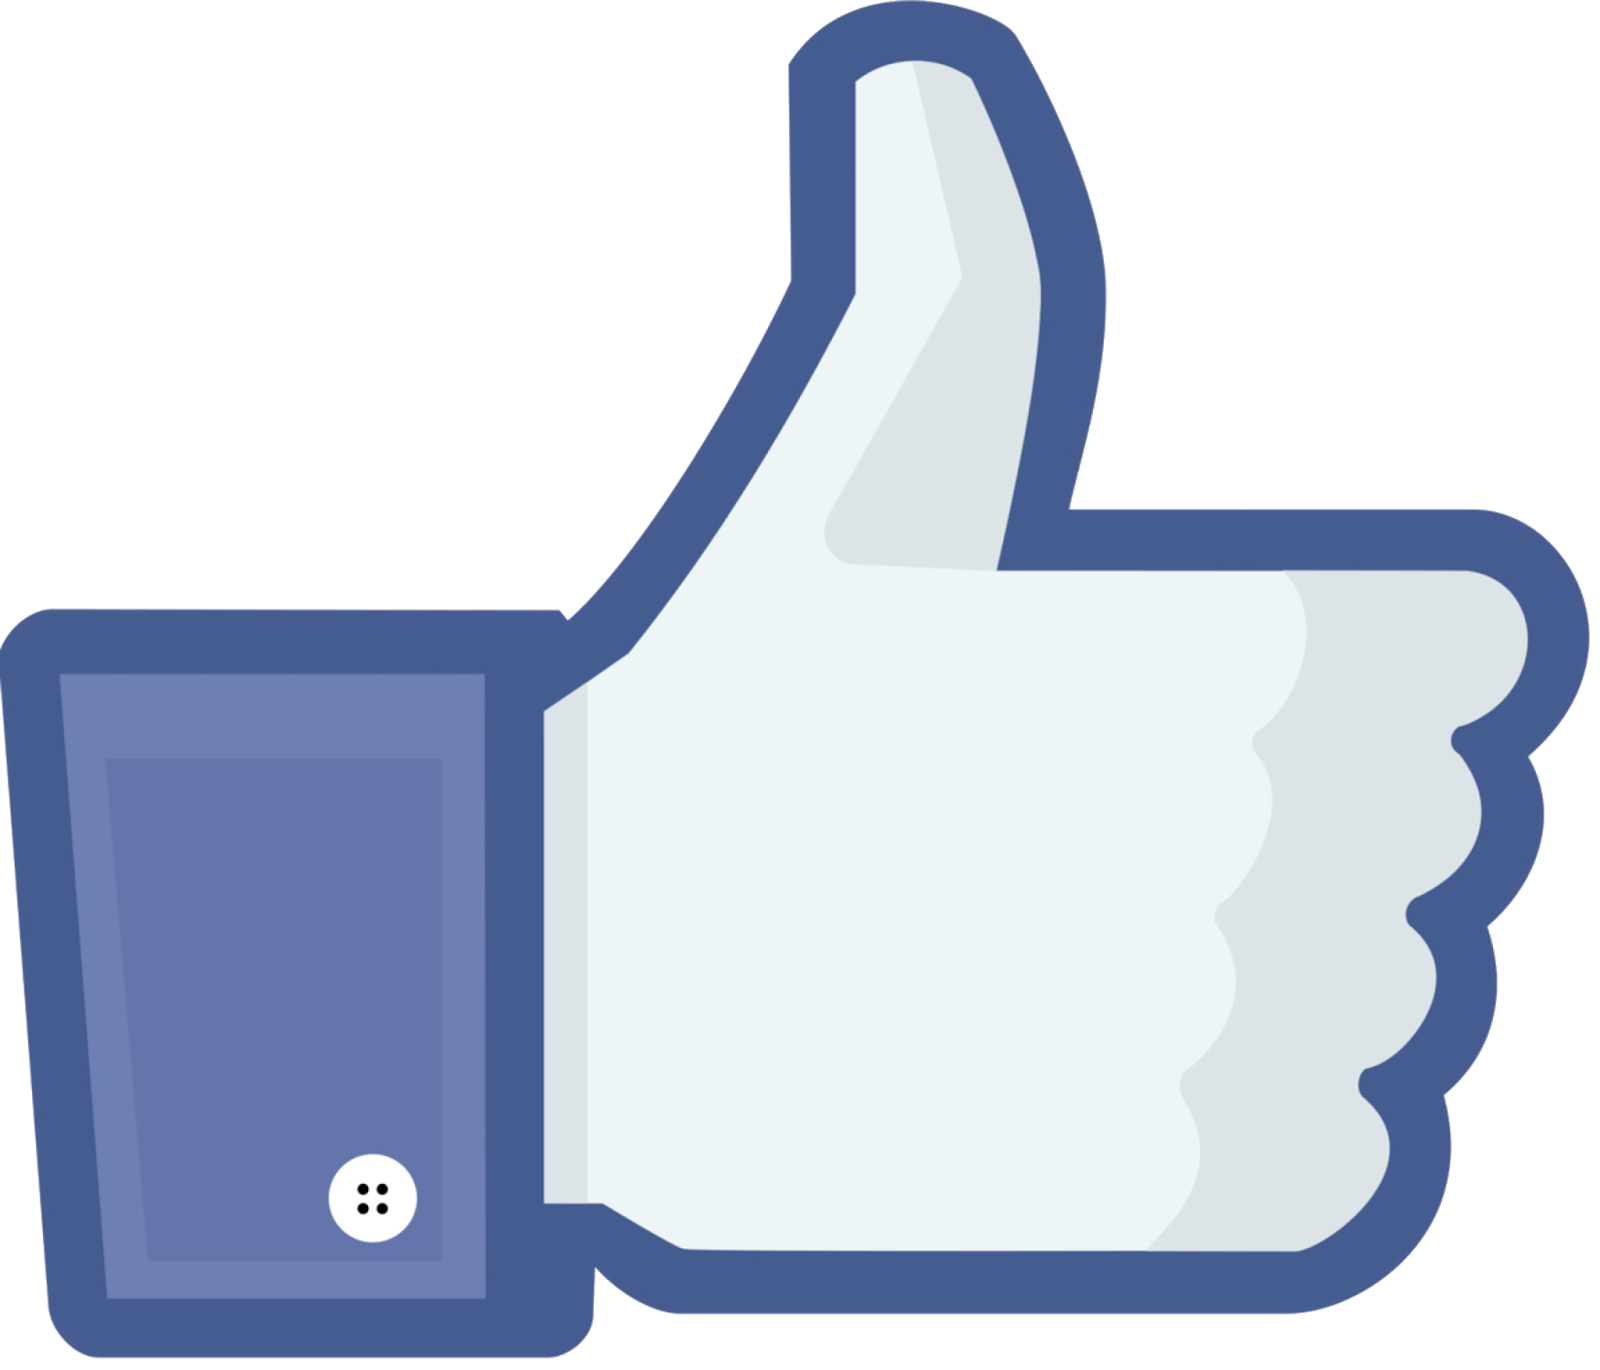 facebook logo like share png transparent background png